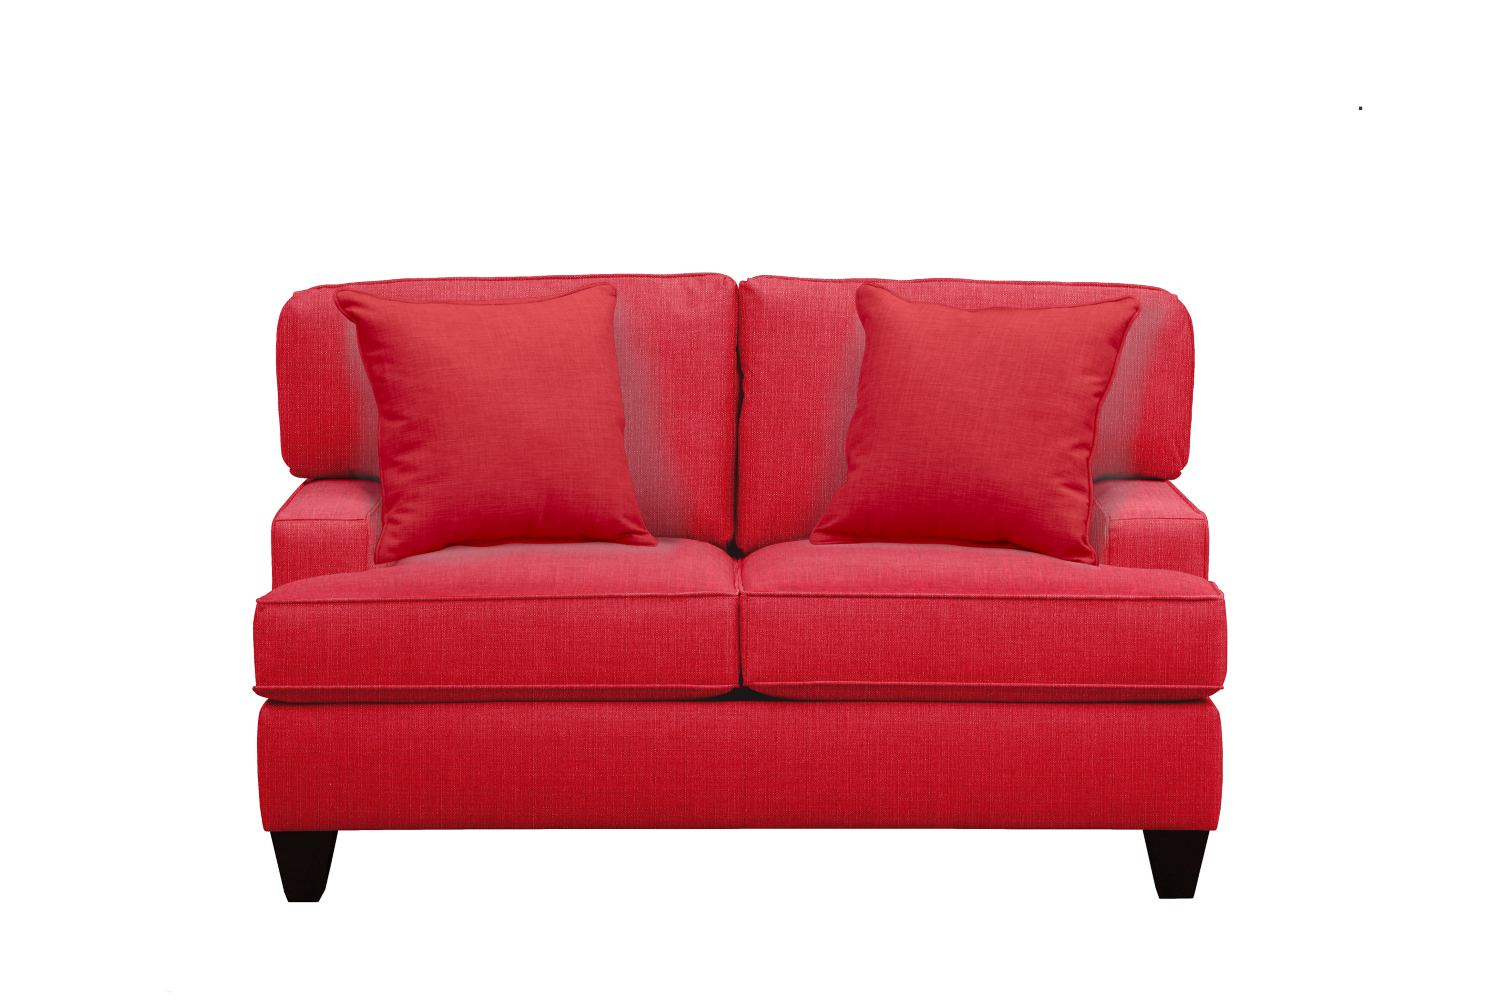 "Living Room Furniture - Conner Track Arm Sofa 63"" Depalma Cherry w/ Depalma Cherry Pillow"